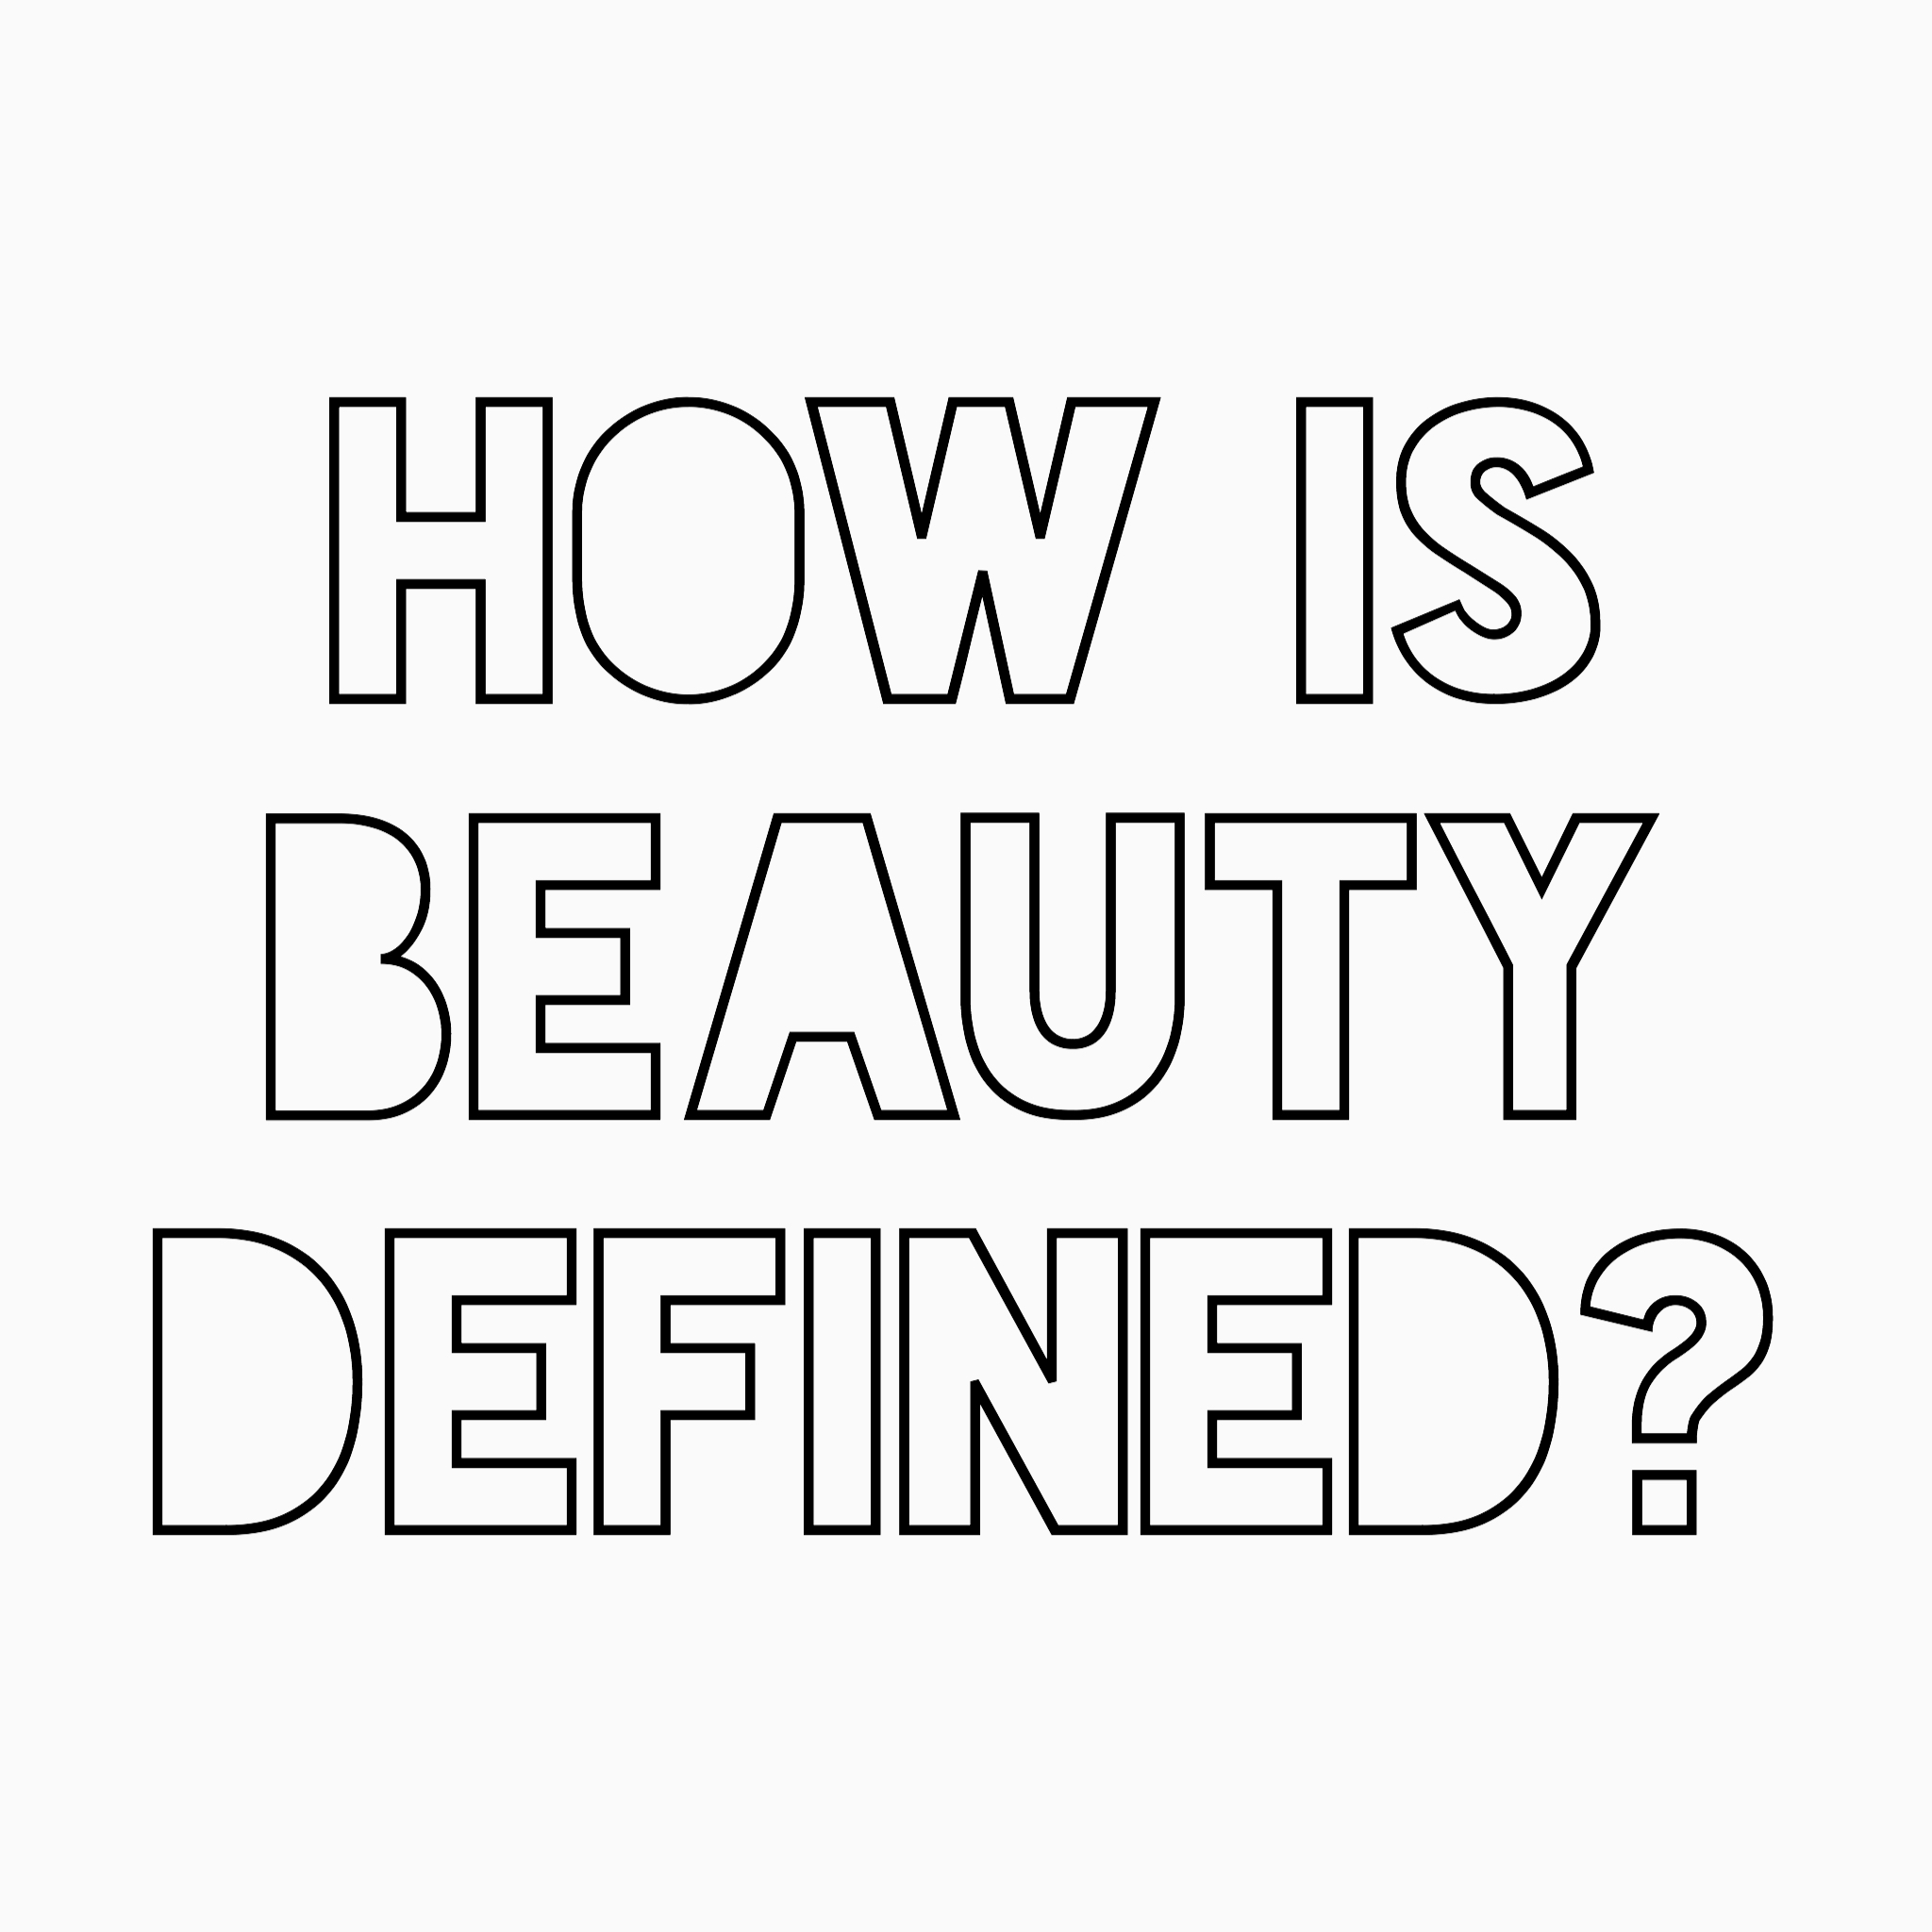 Are beauty standards changing?